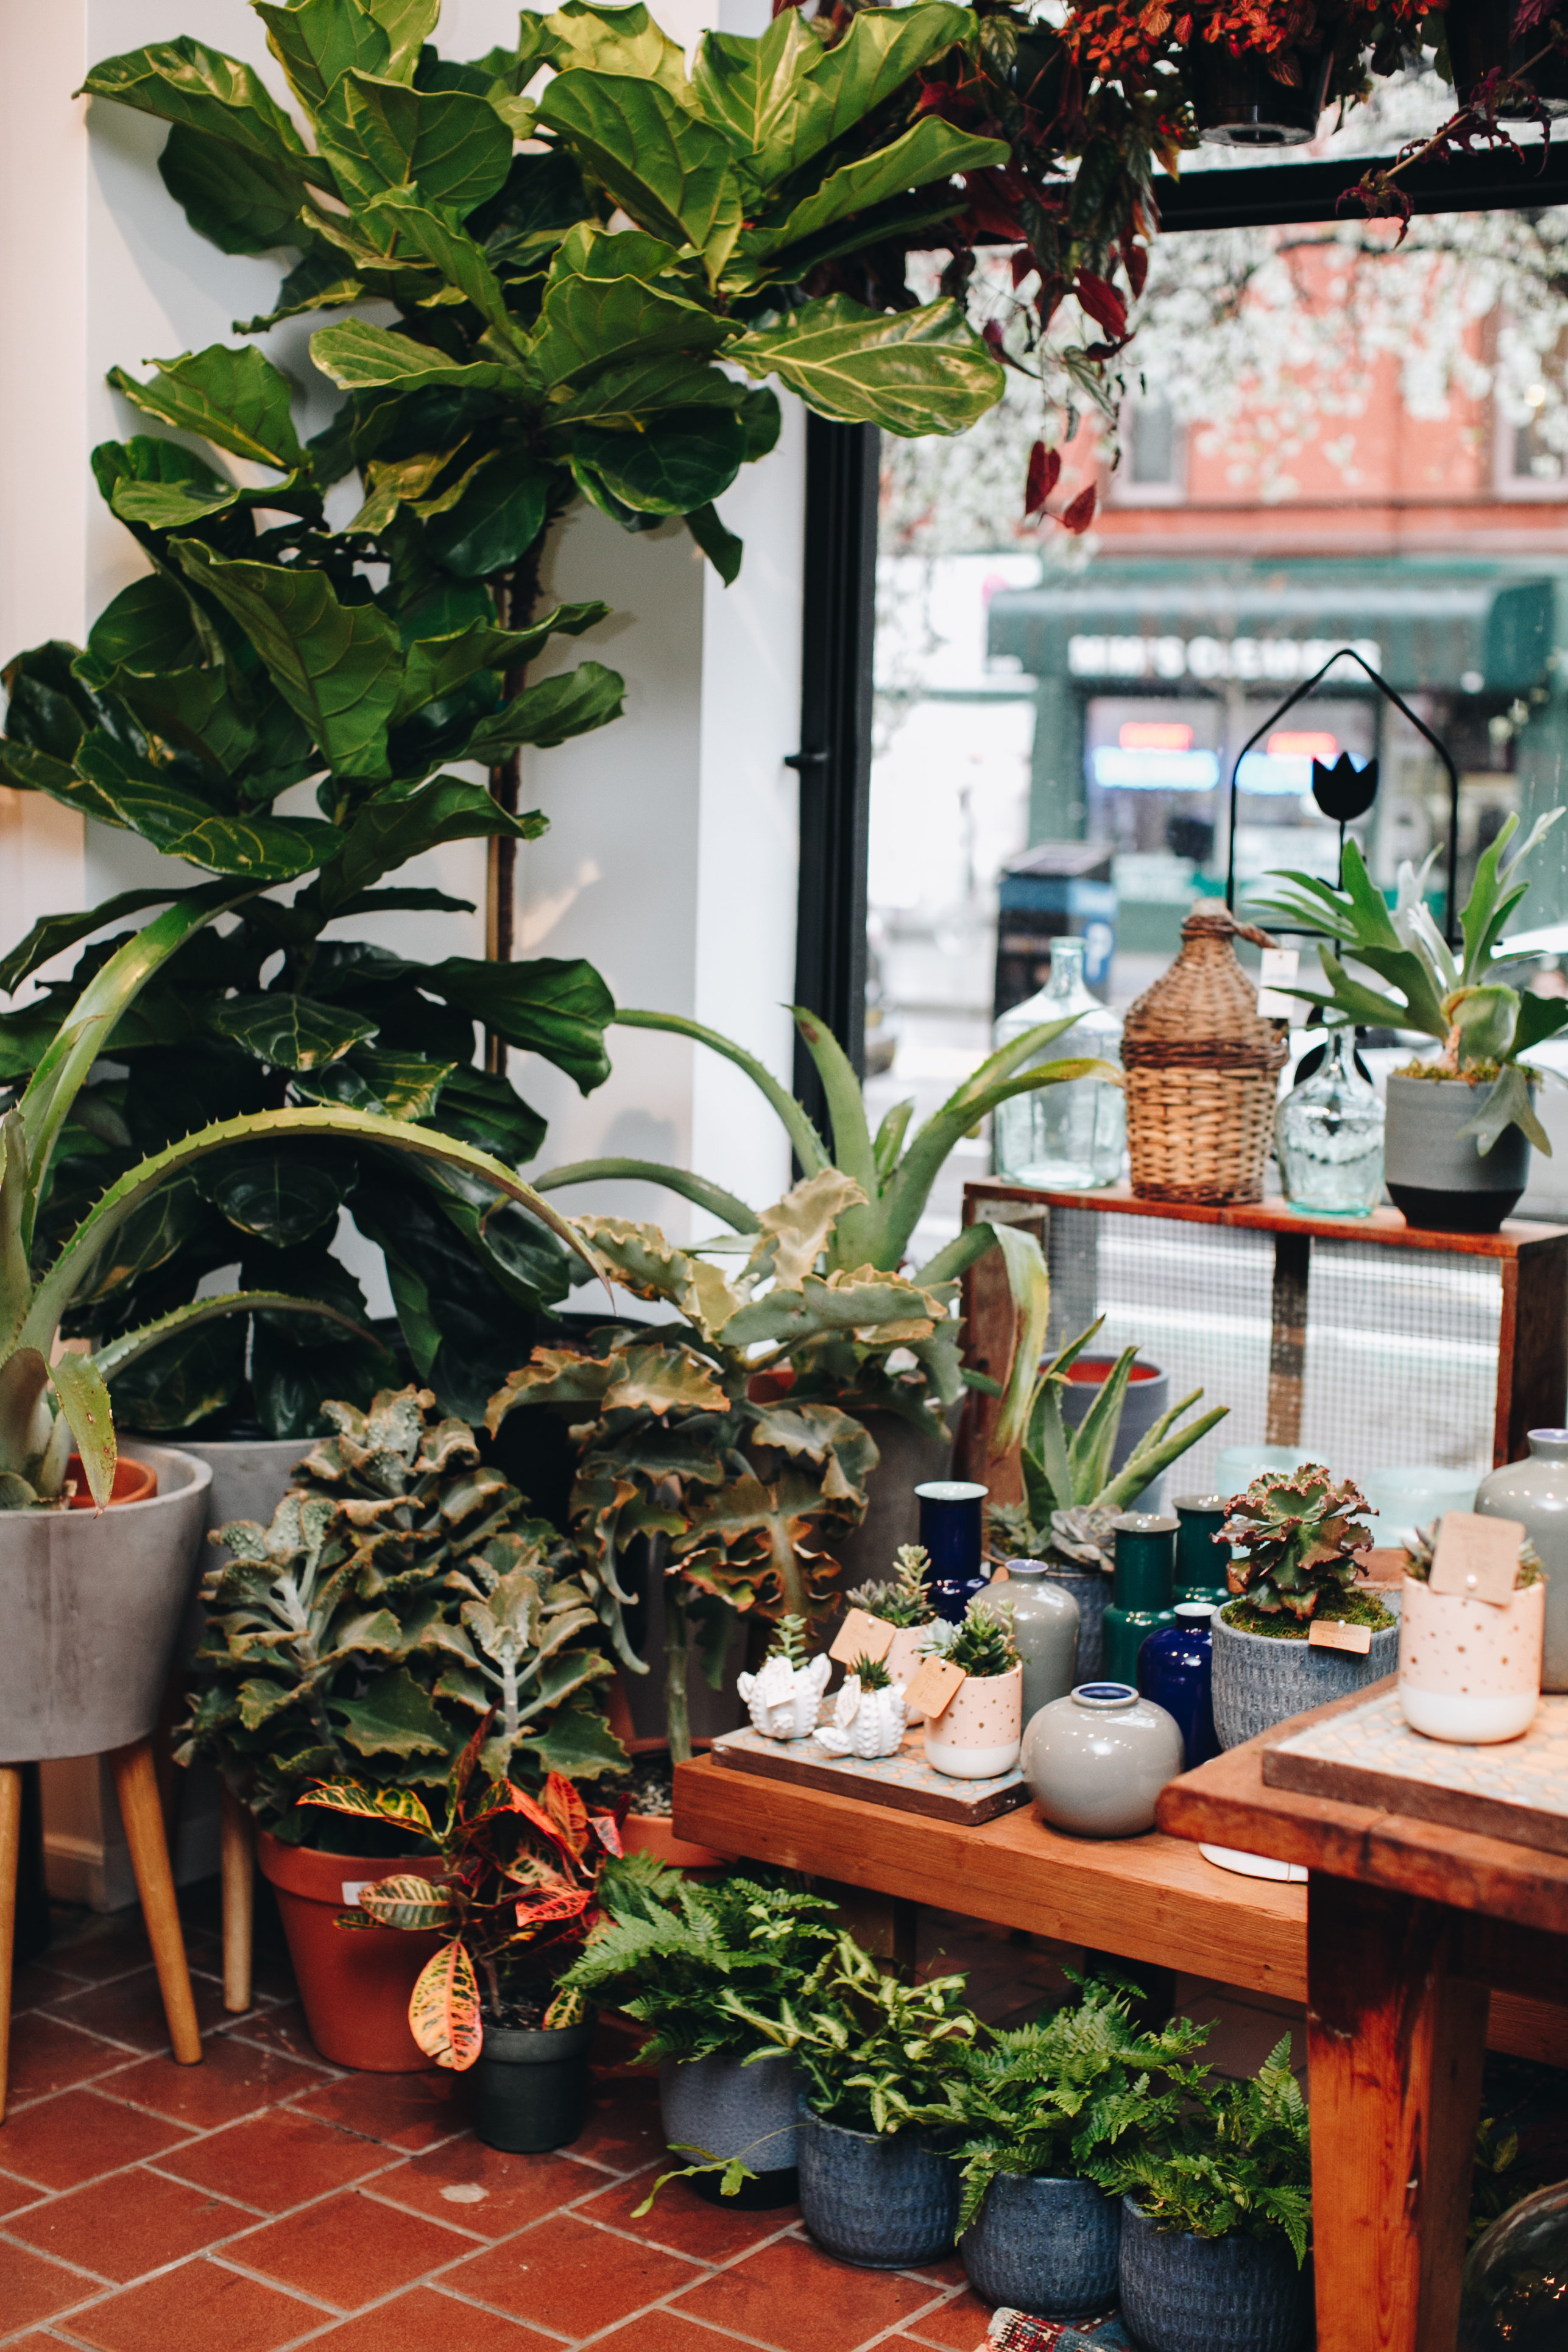 PlantShed New York Flowers image